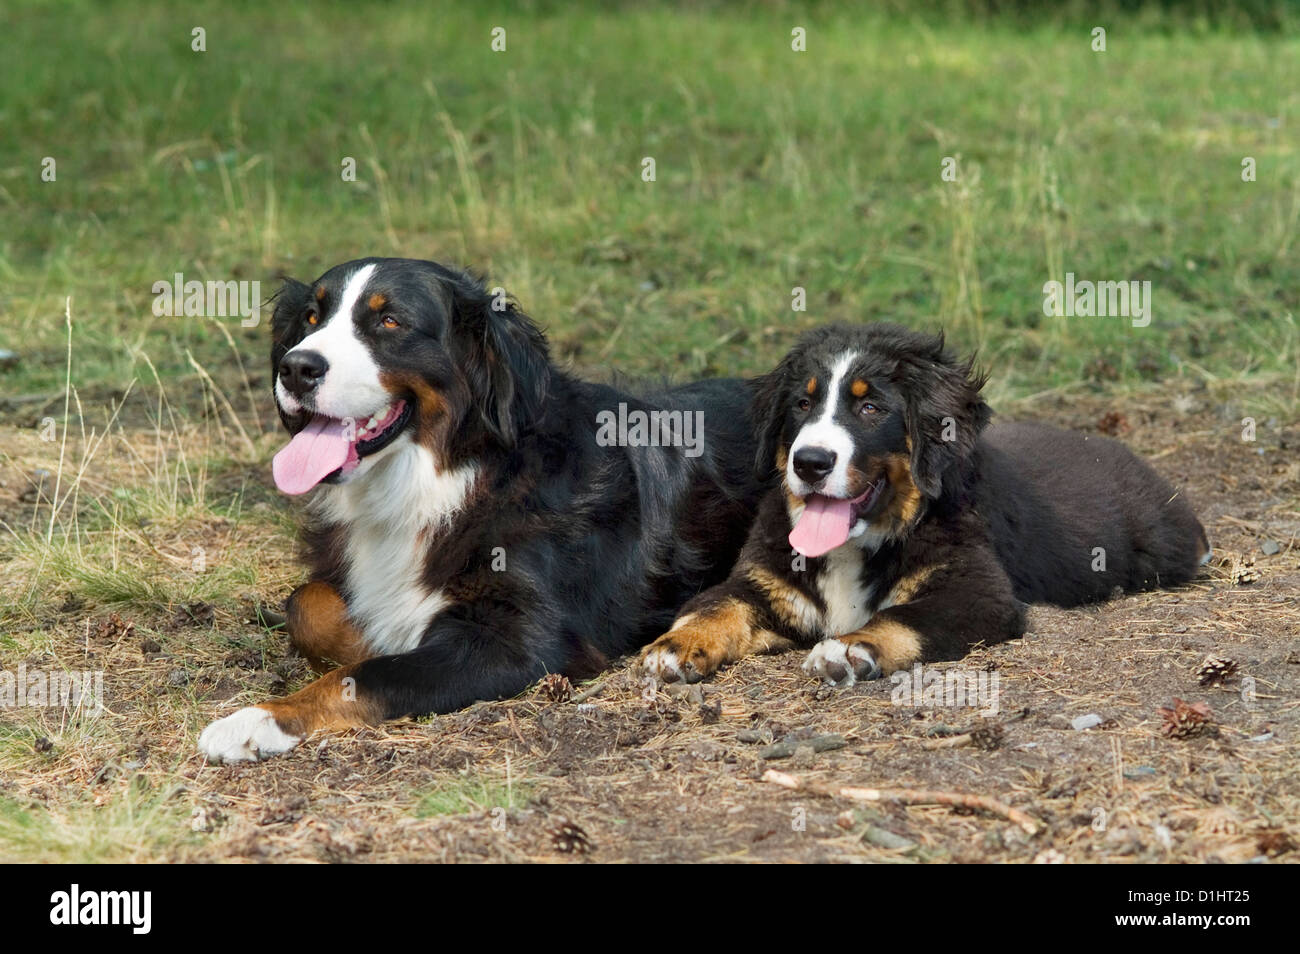 Bernese Mountain dogs - Stock Image